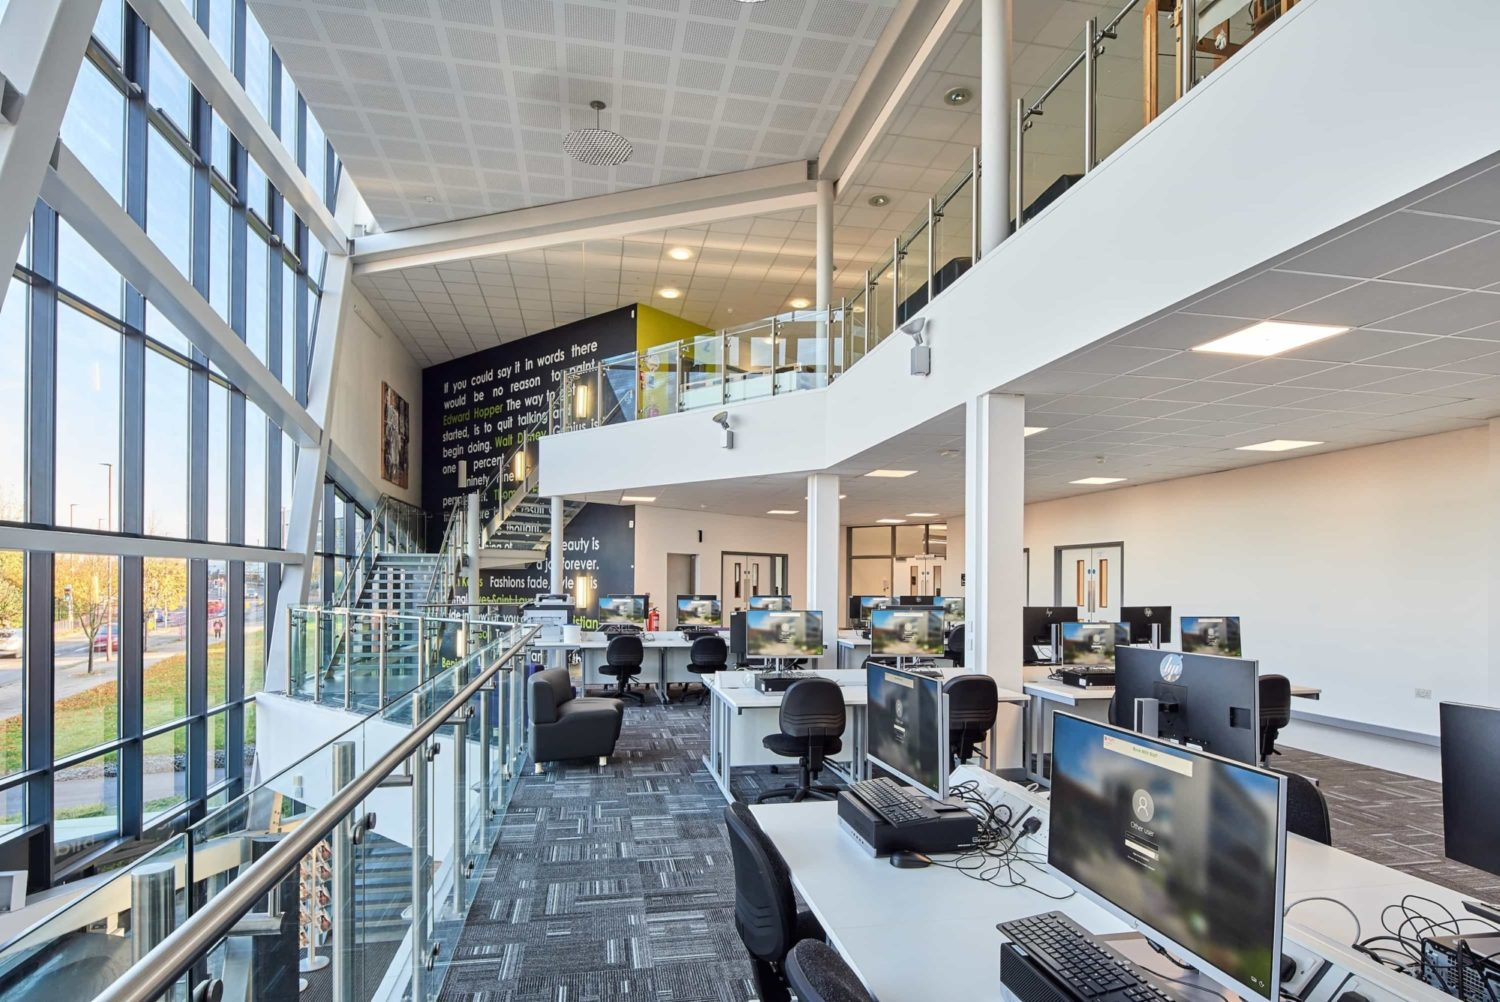 Dudley College learning space